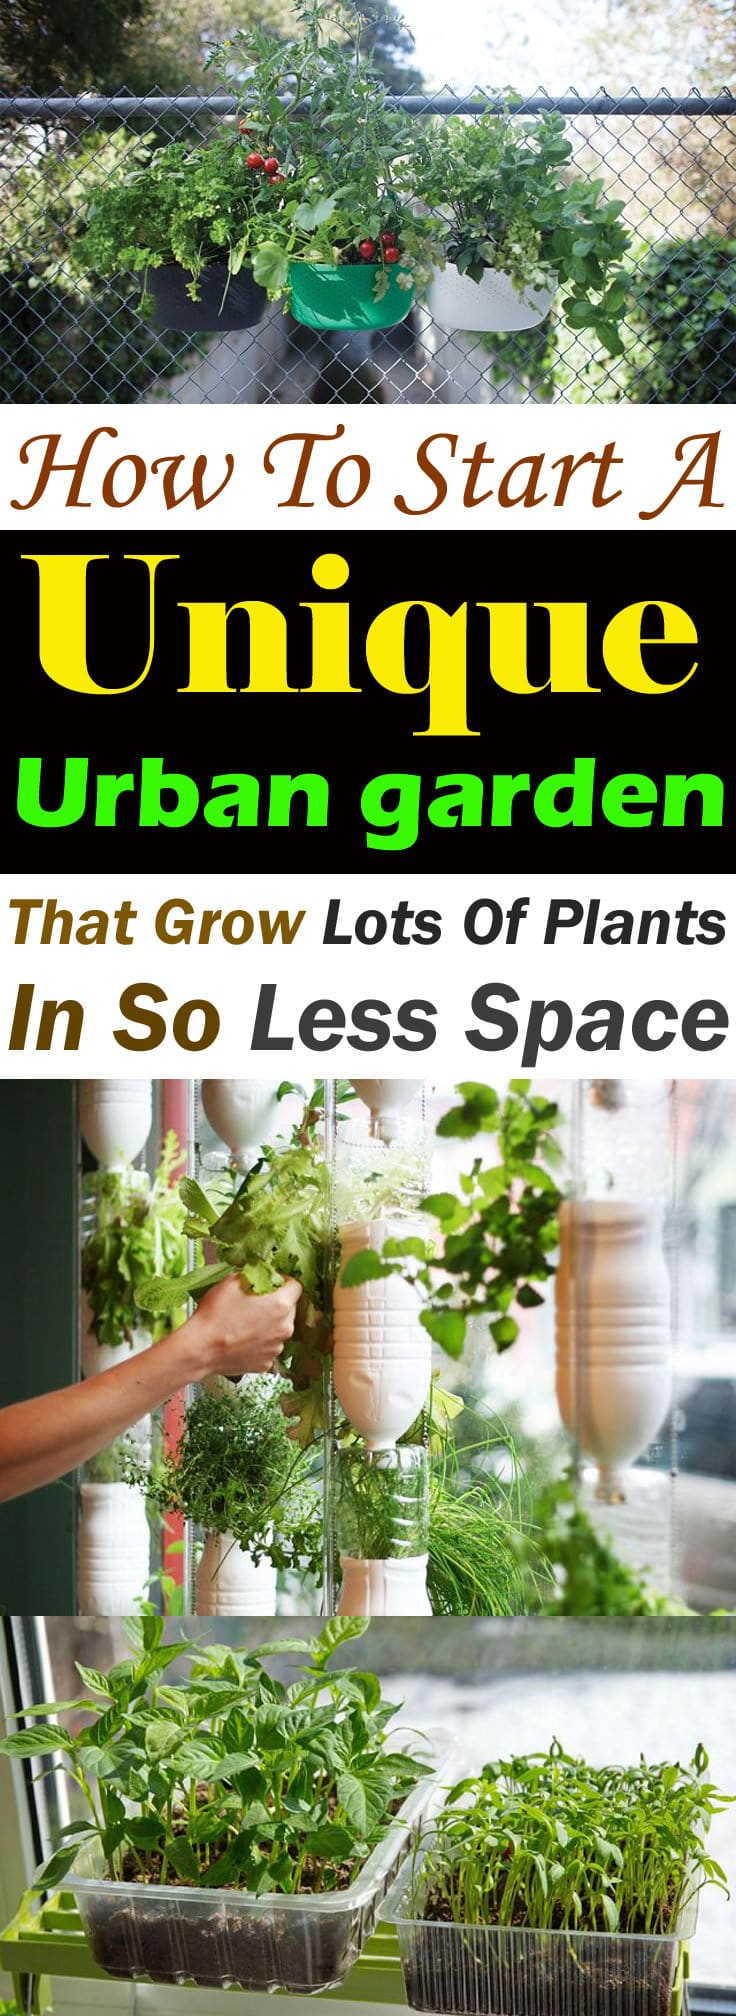 to start an urban garden you need the right tools ideas and some